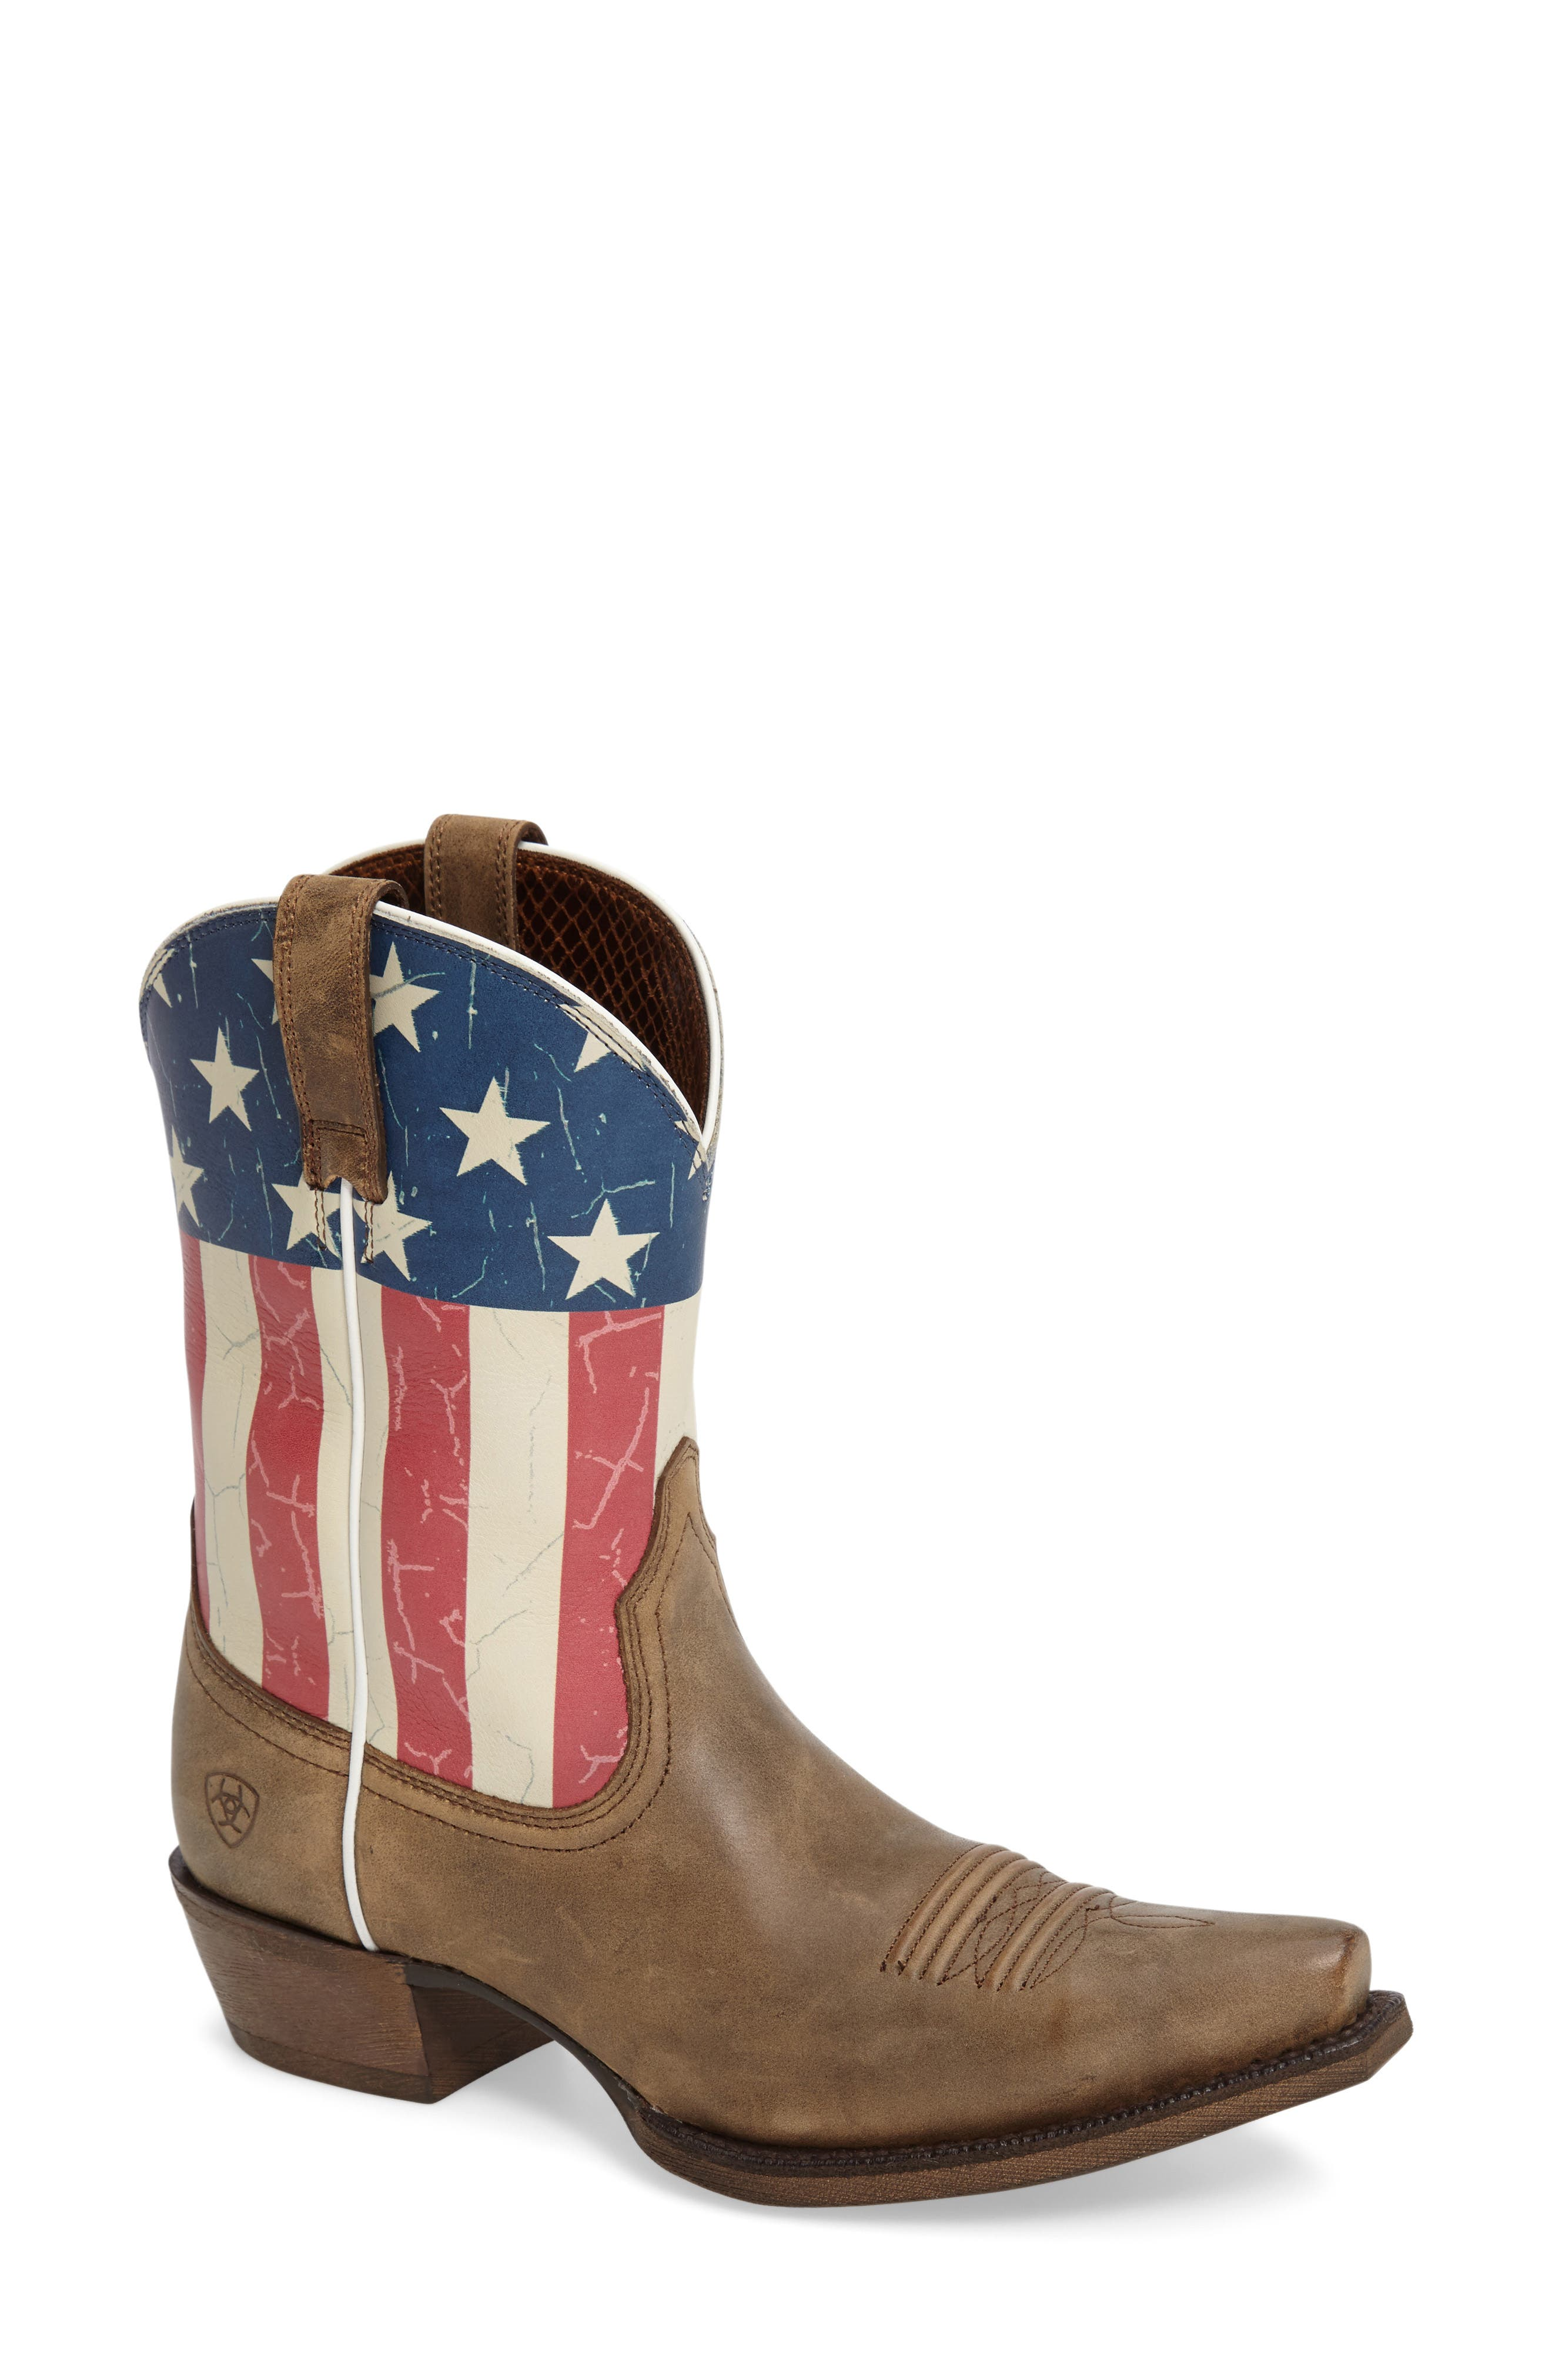 Alternate Image 1 Selected - Ariat Old Glory Western Boot (Women)